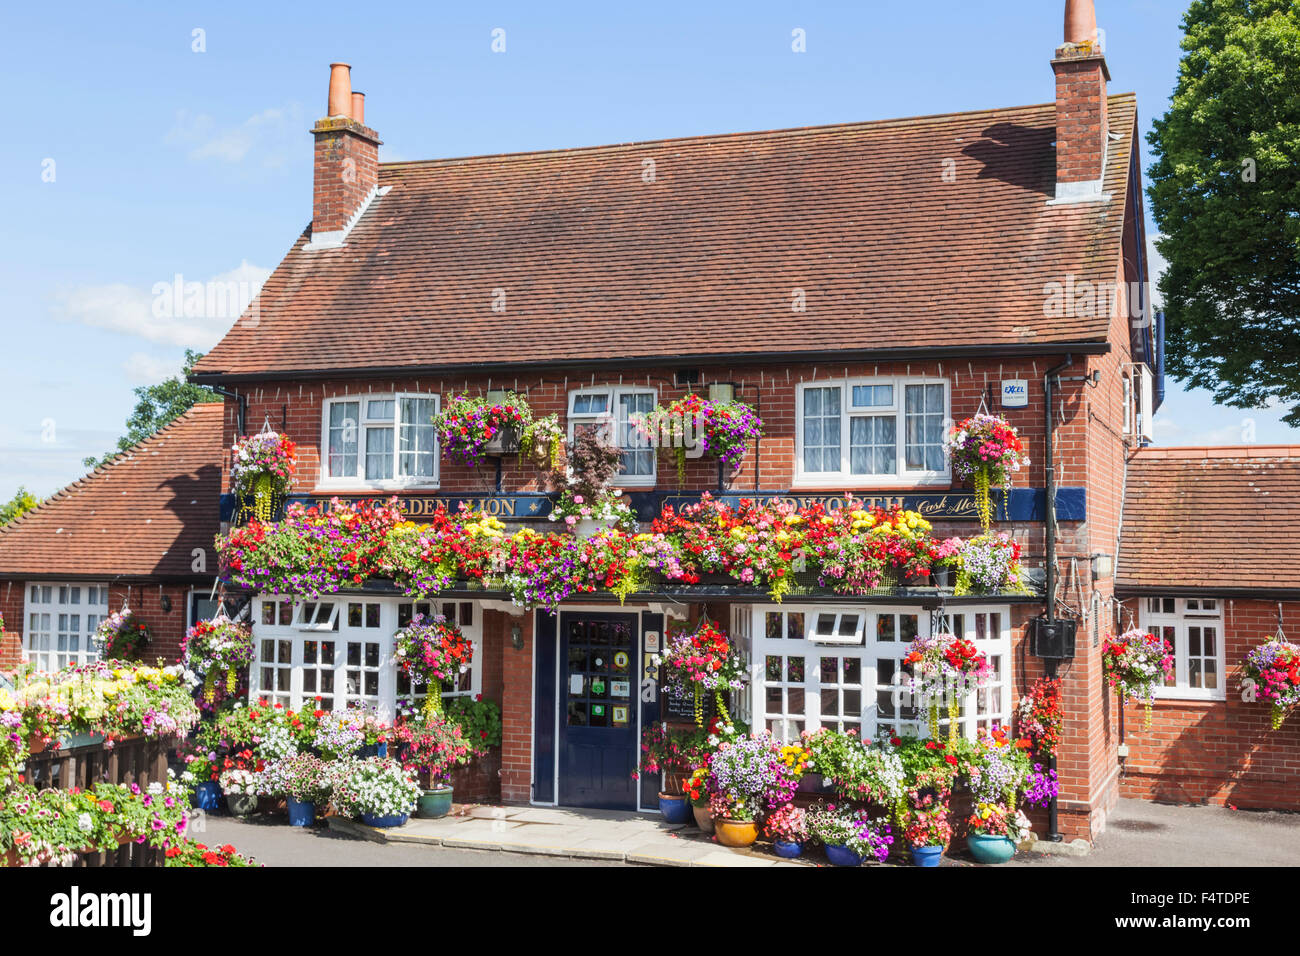 England, Hampshire, Country Pub - Stock Image